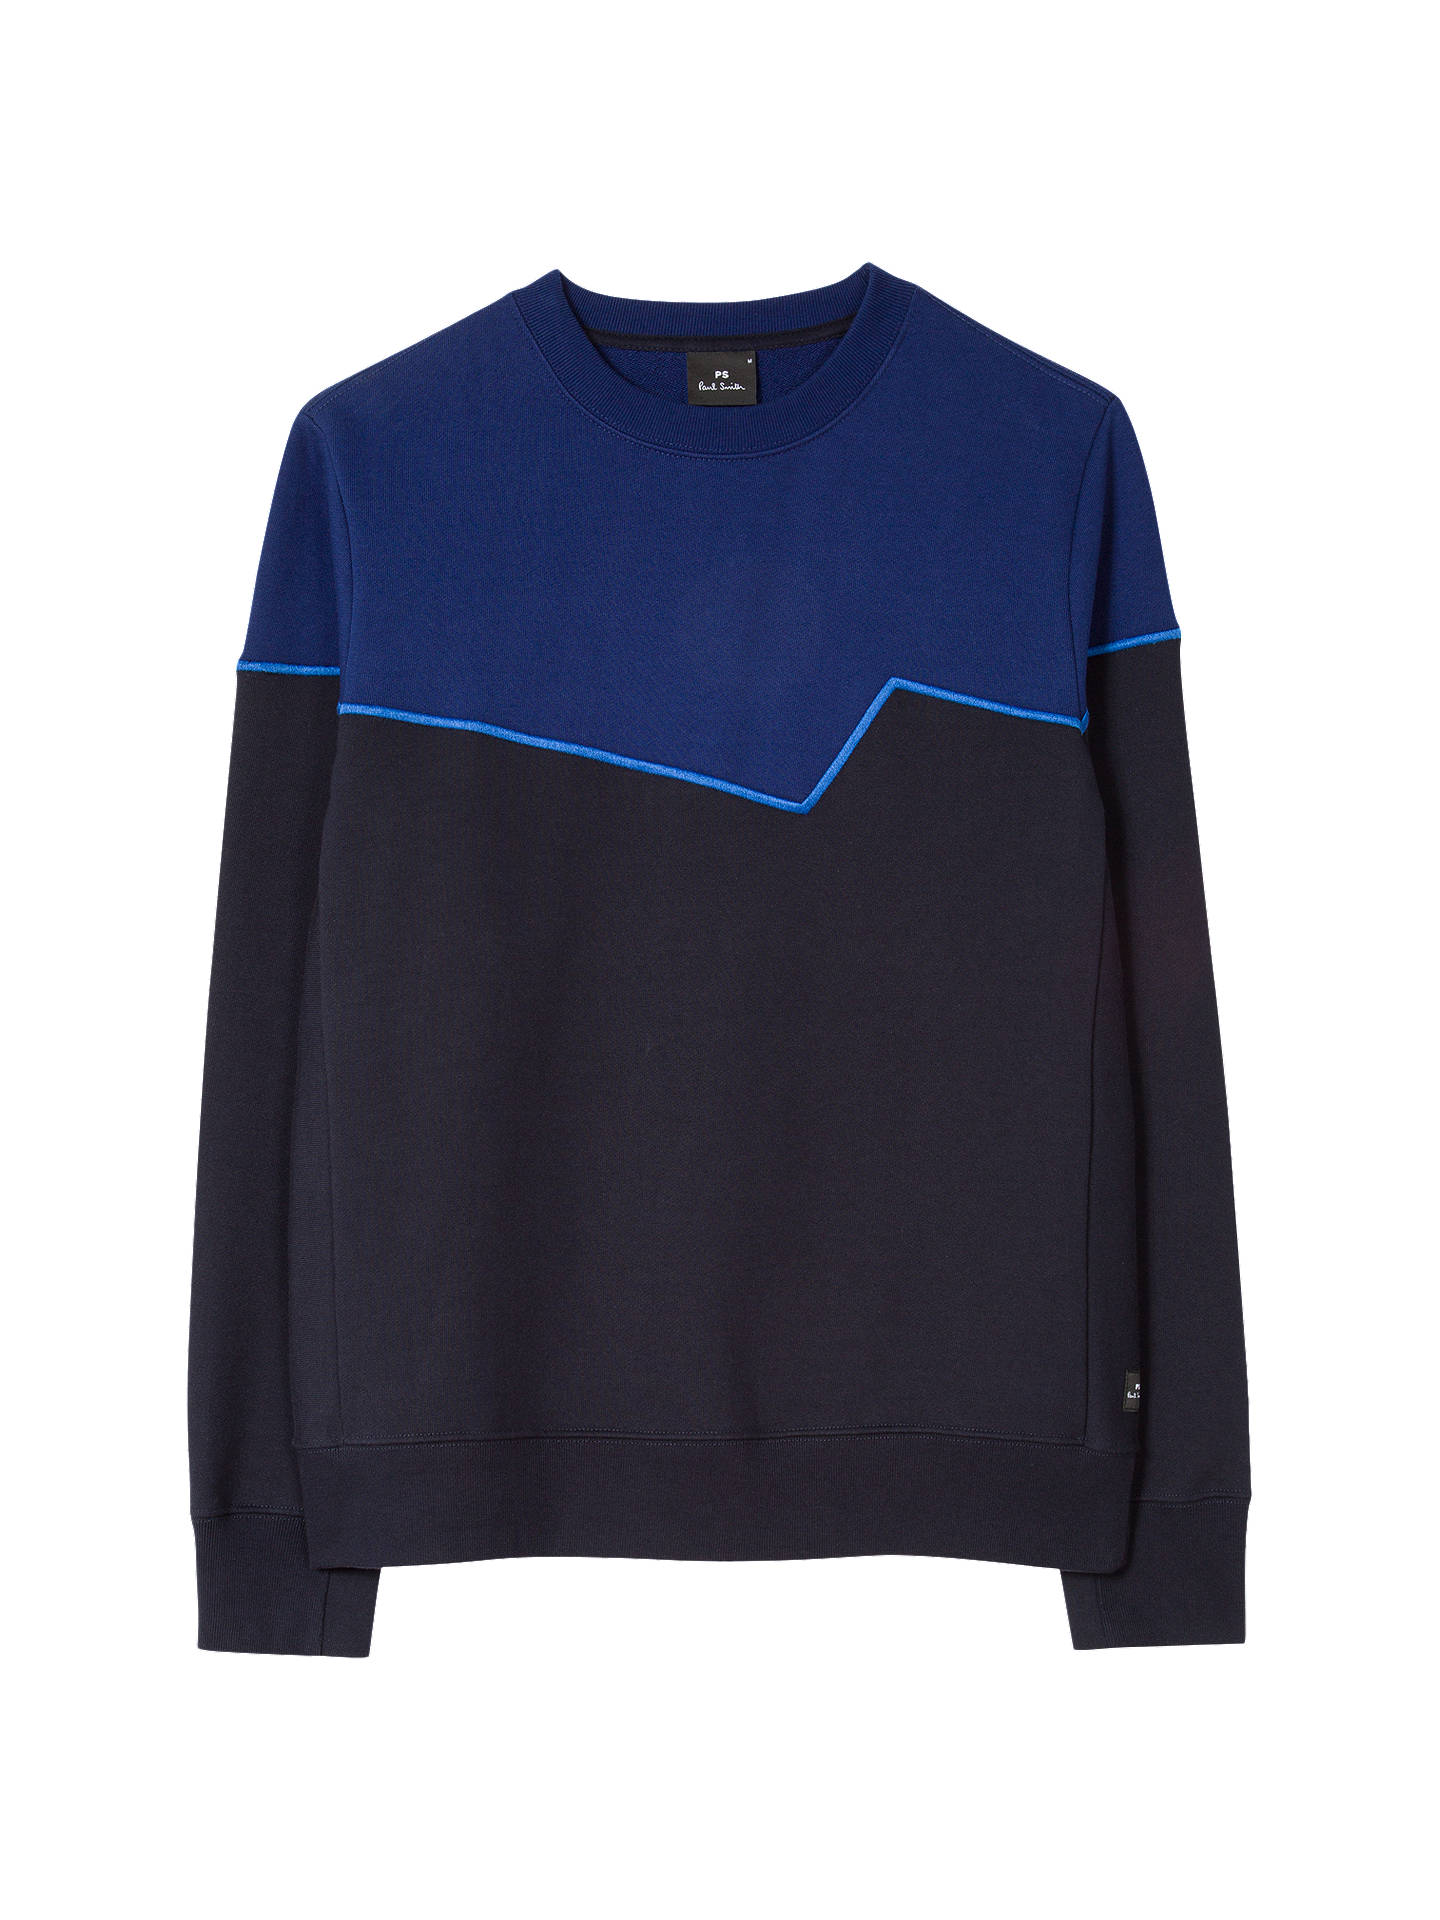 Buy PS Paul Smith Contrast Sweatshirt, Navy/Blue, M Online at johnlewis.com